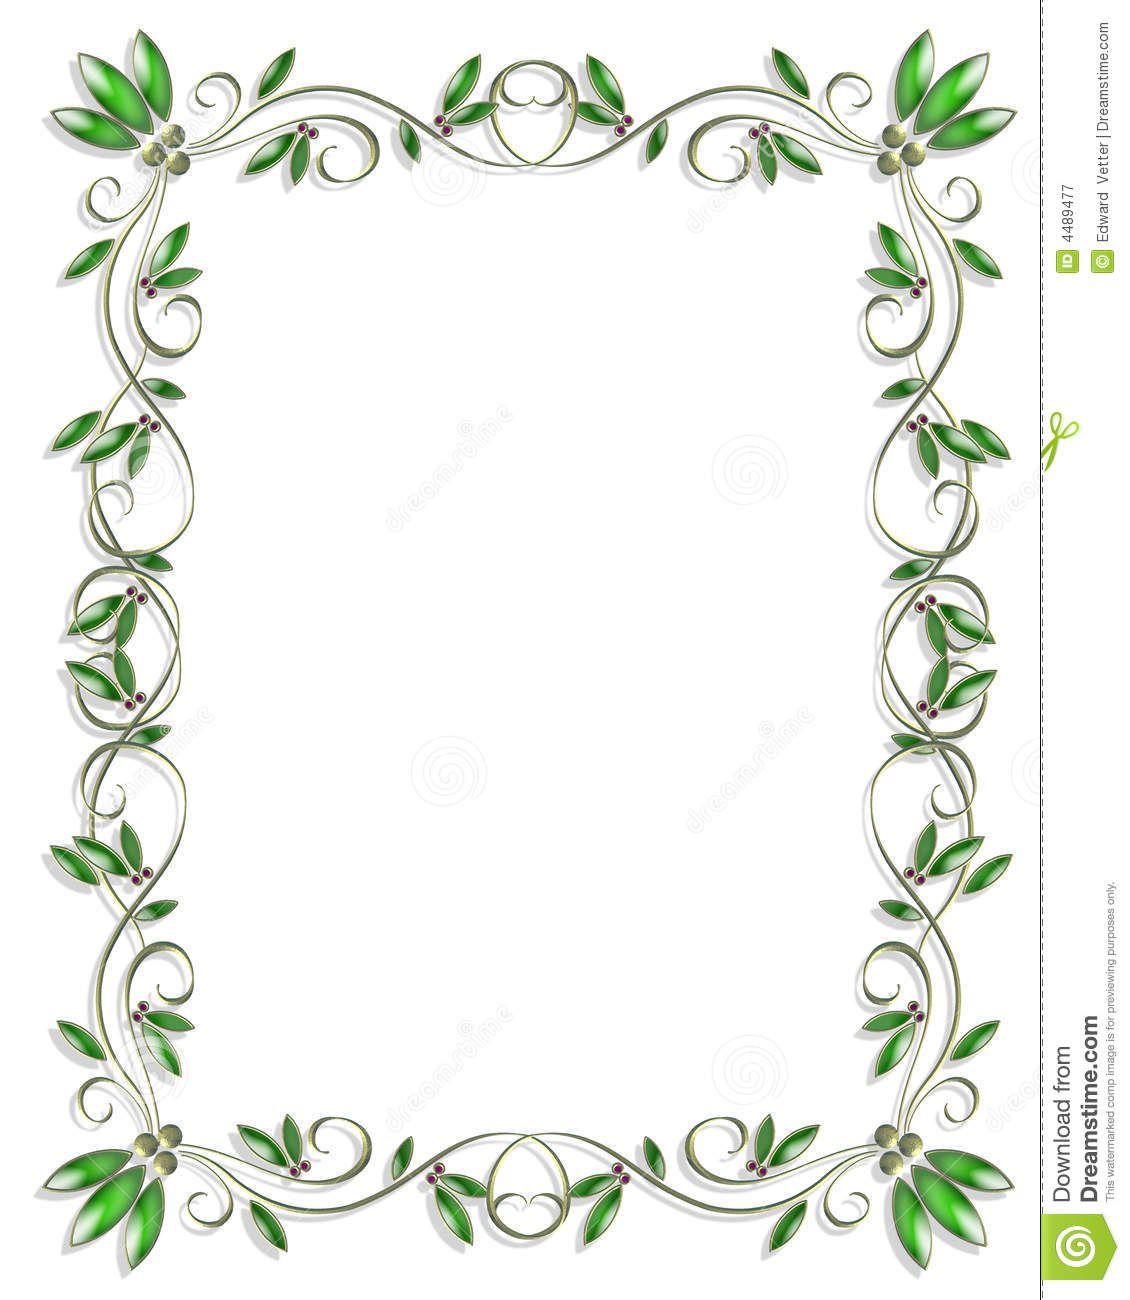 Border design element green 3 stock illustration illustration of download border design element green 3 stock illustration illustration of illustration artistic 4489477 stopboris Image collections